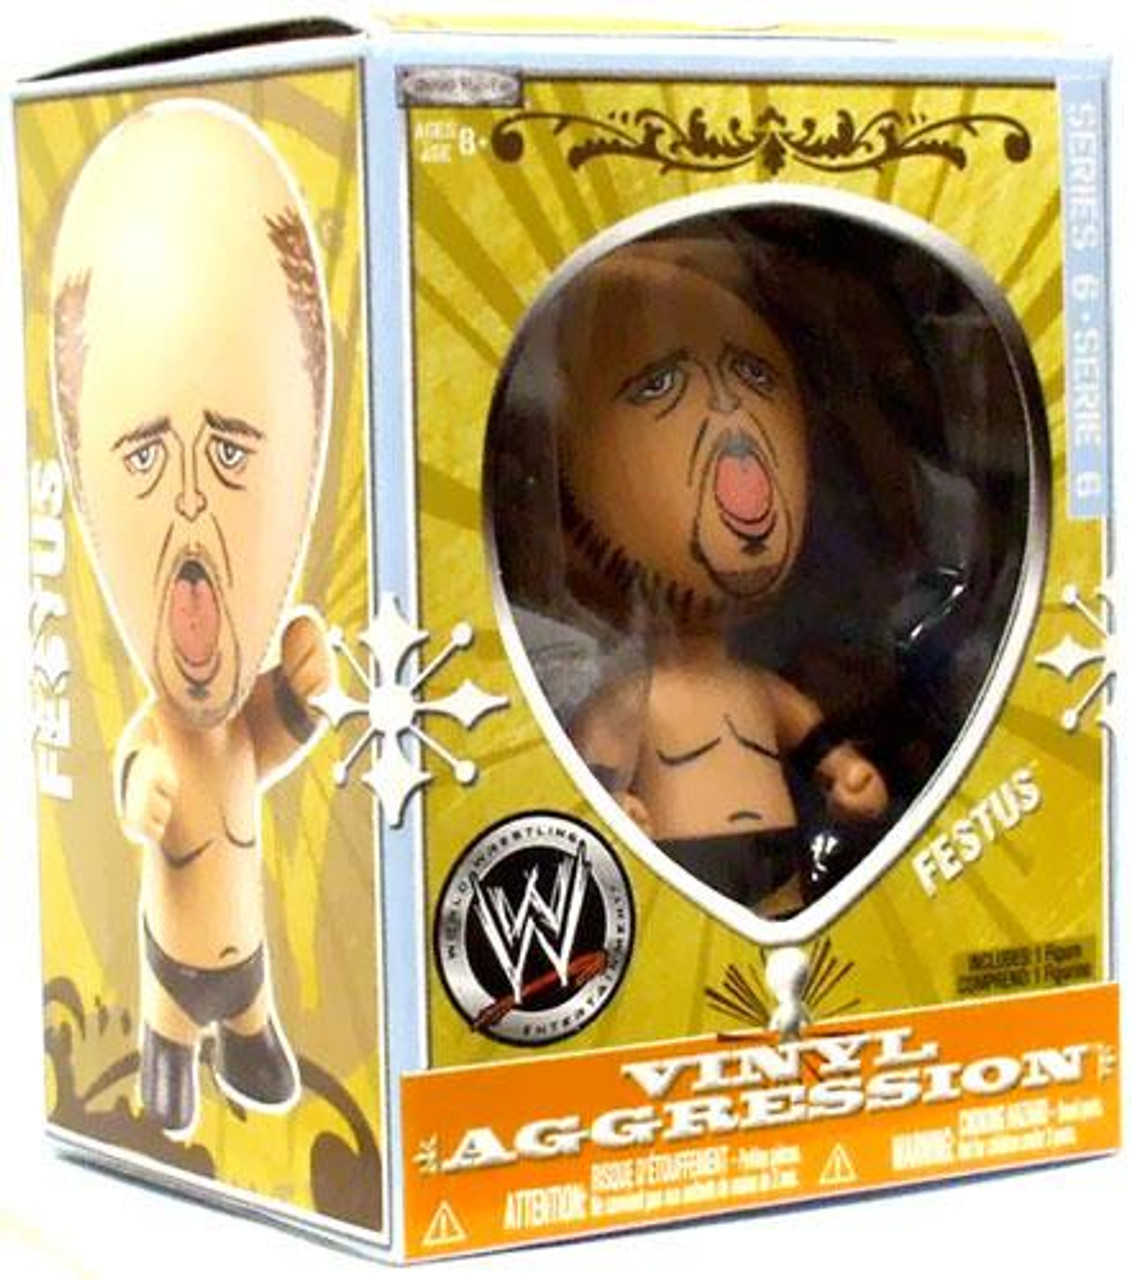 WWE Wrestling Vinyl Aggression Series 6 Festus 3-Inch Vinyl Figure